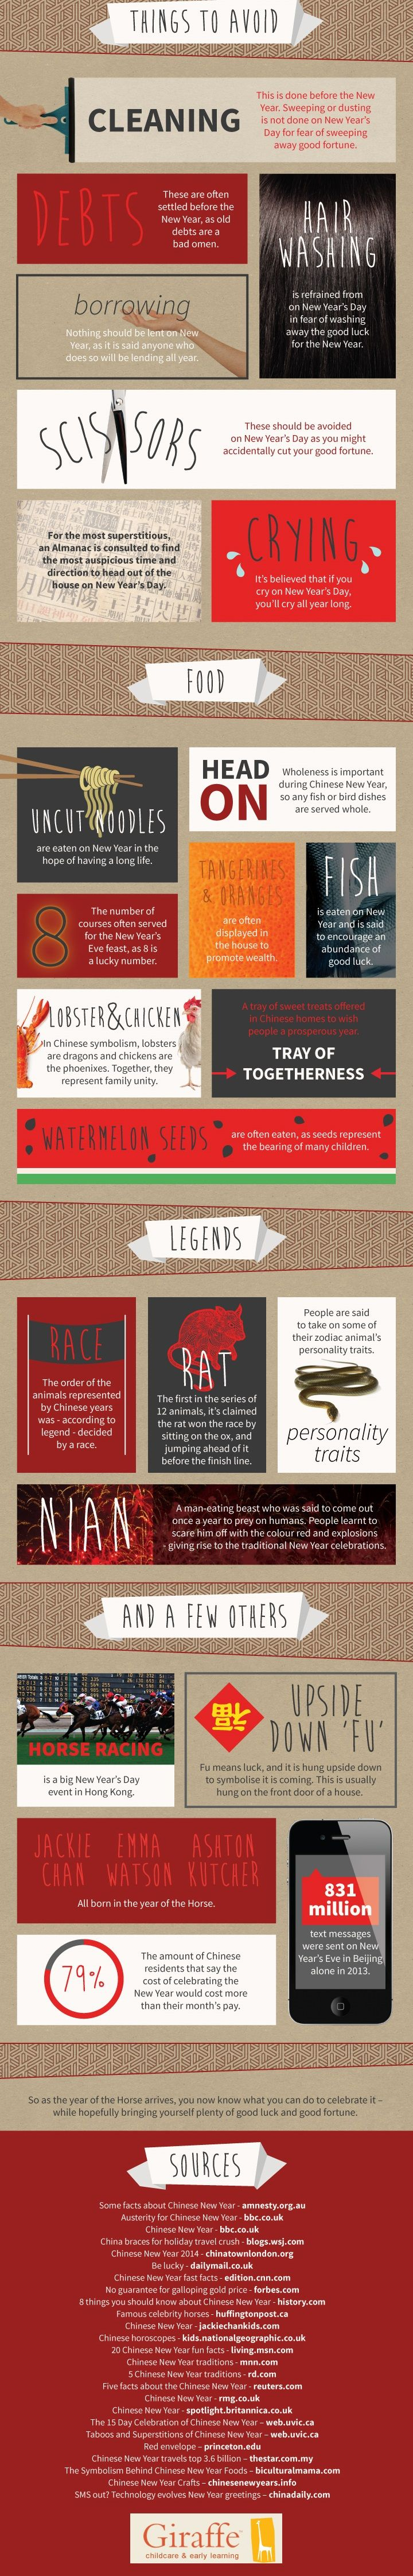 #CNY Happy Chinese New Year #traditions Fun Facts #YearofTheHorse [infographic]